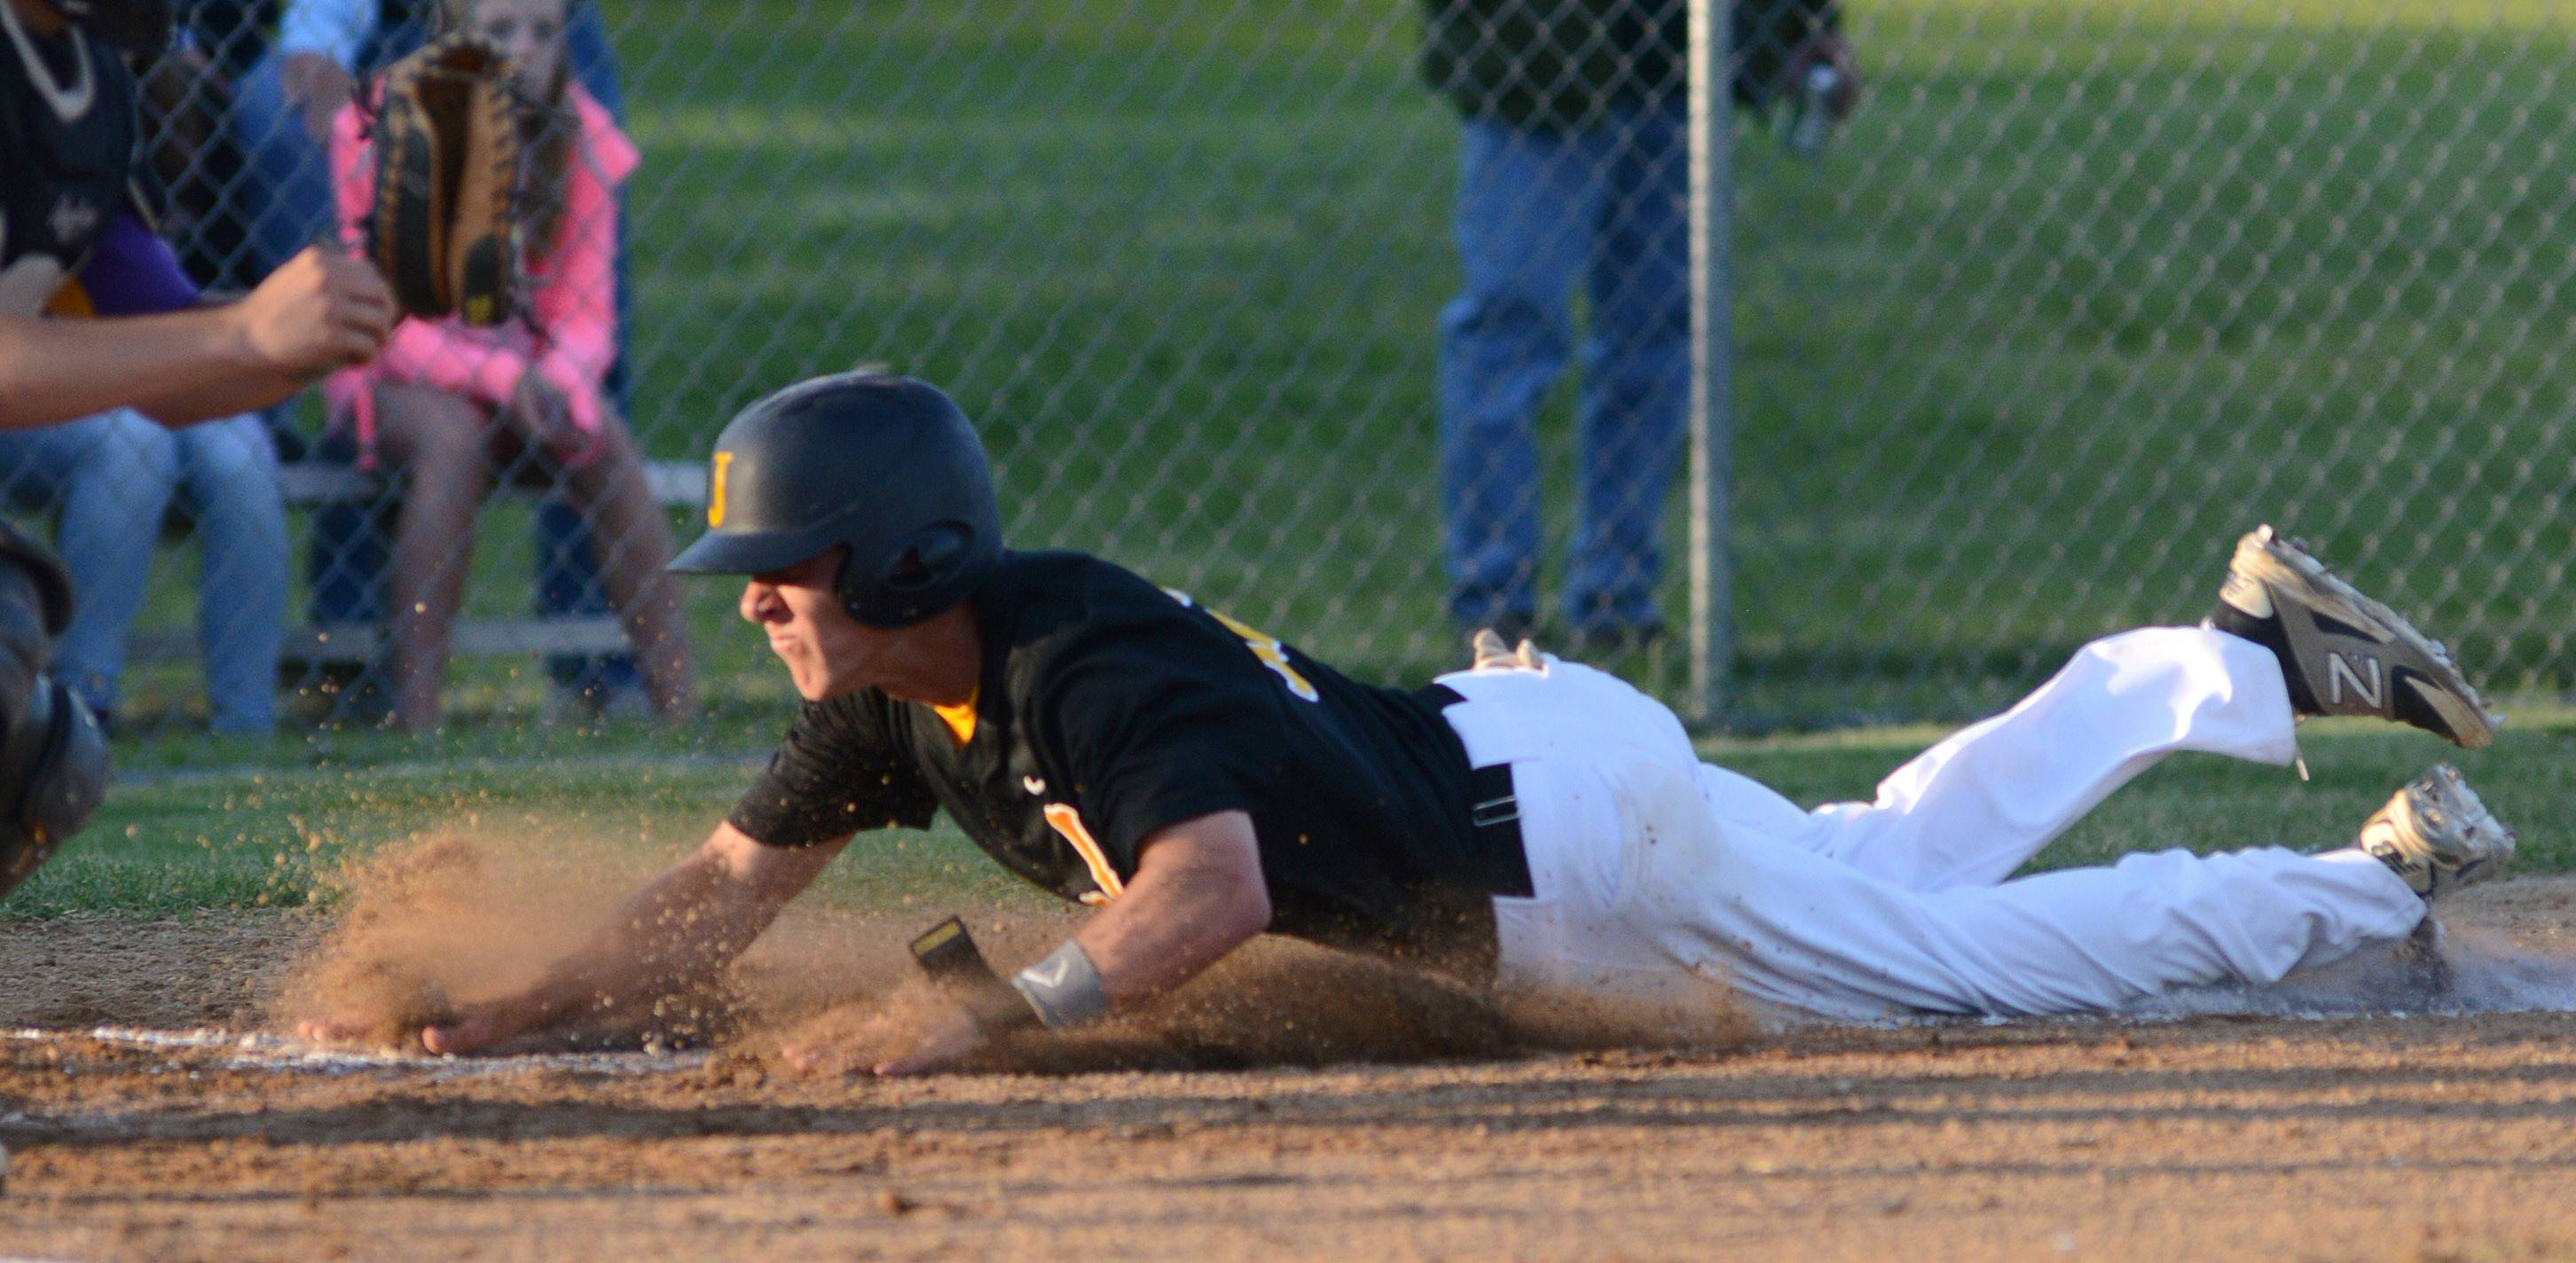 Jacobs' Matt Kozlak slides into home plate in the first inning, scoring the first run for the team vs. Hononegah in the Class 4A McHenry sectional semifinal on Wednesday, June 4.